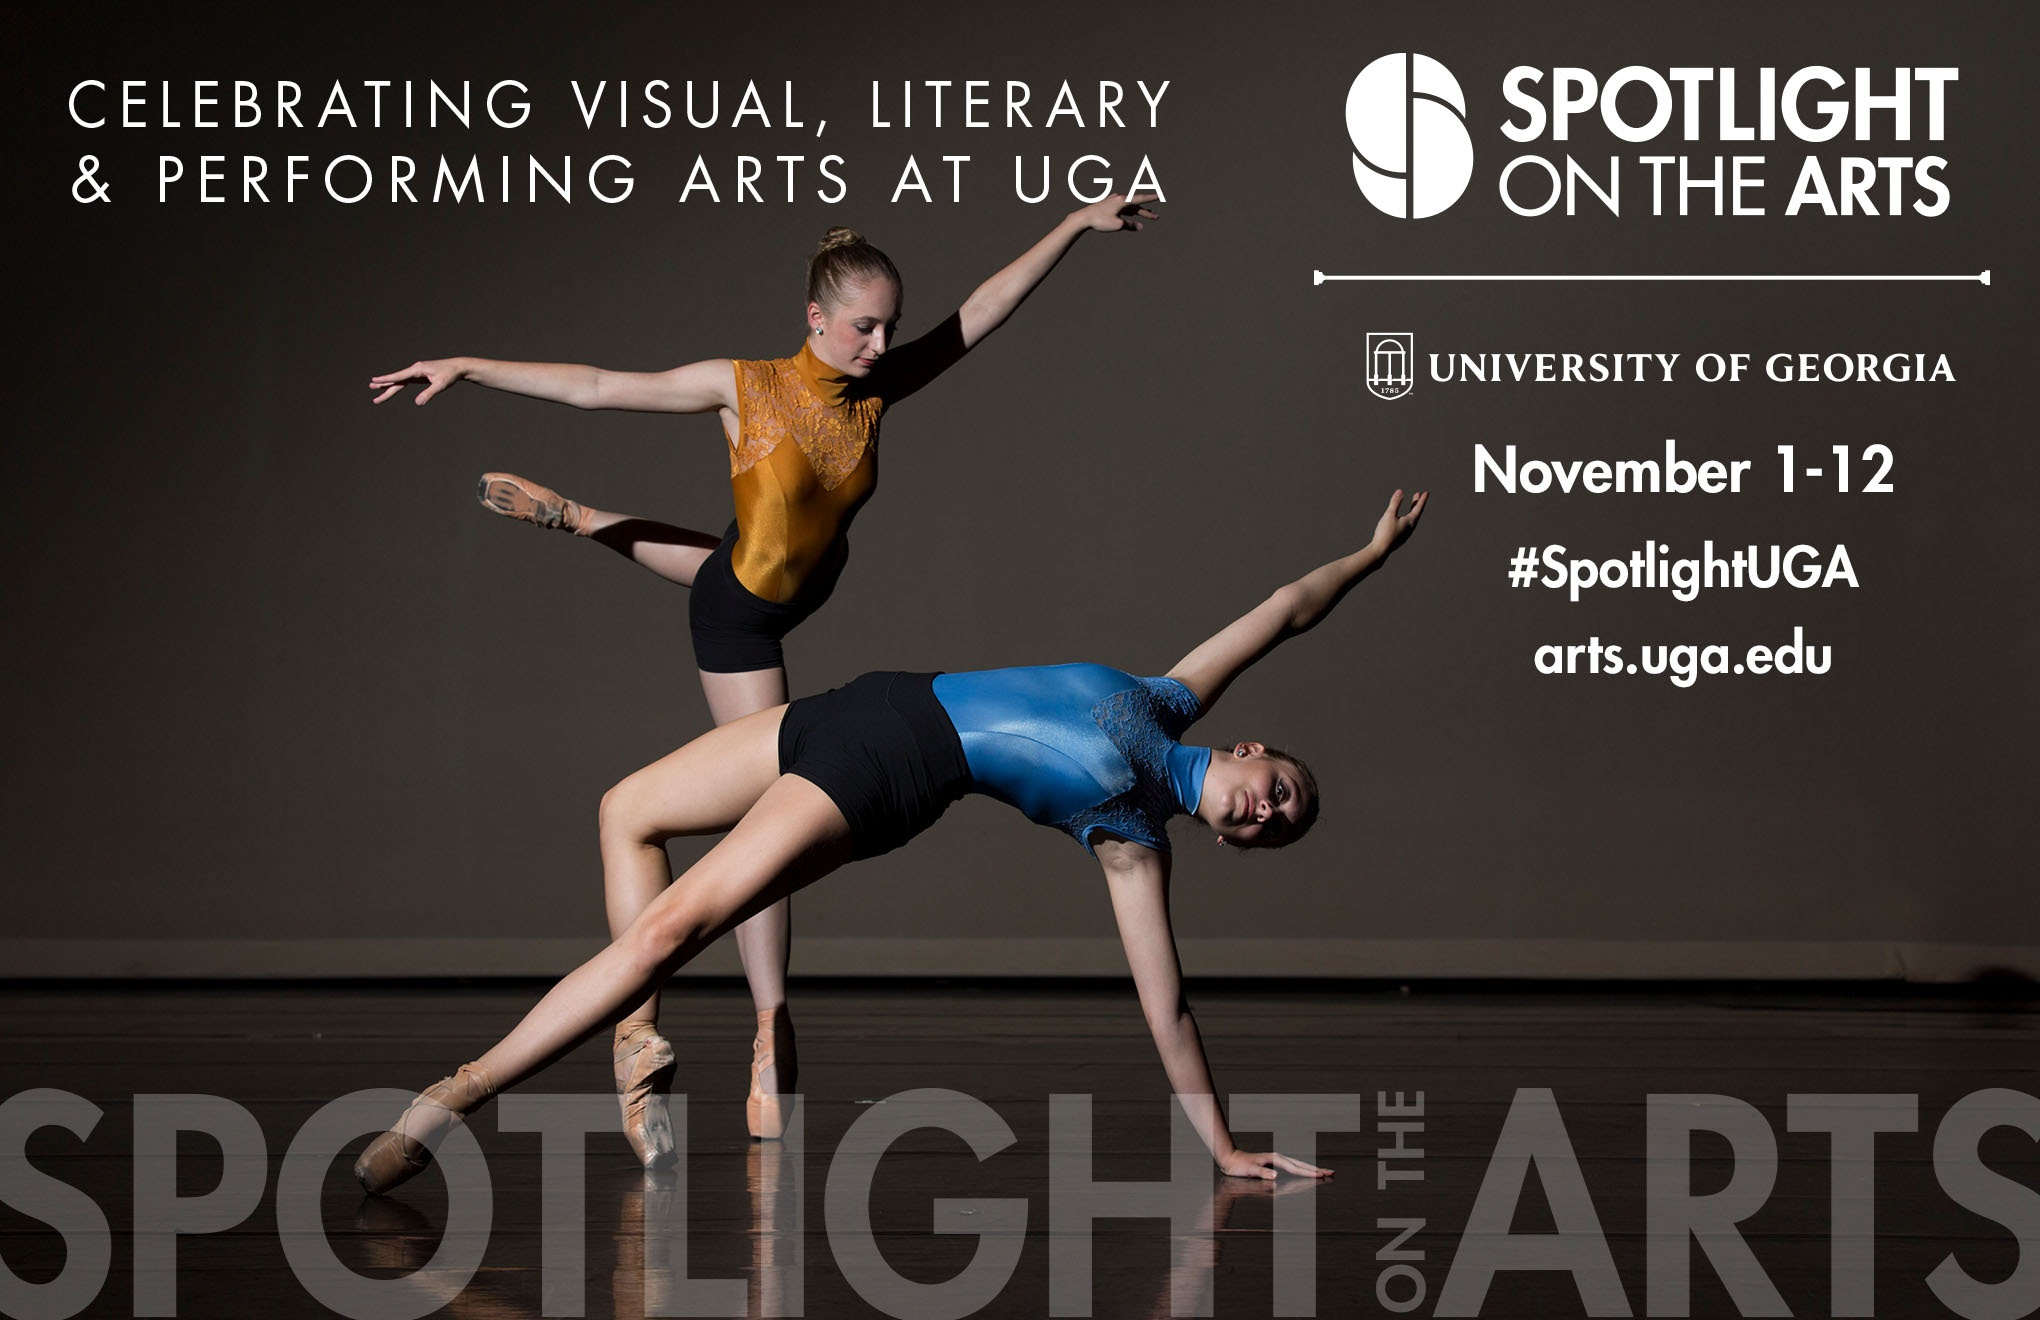 UGA is celebrating its myriad offerings in the visual, literary and performing arts from Nov. 1 – 12 during the sixth annual Spotlight on the Arts festival.